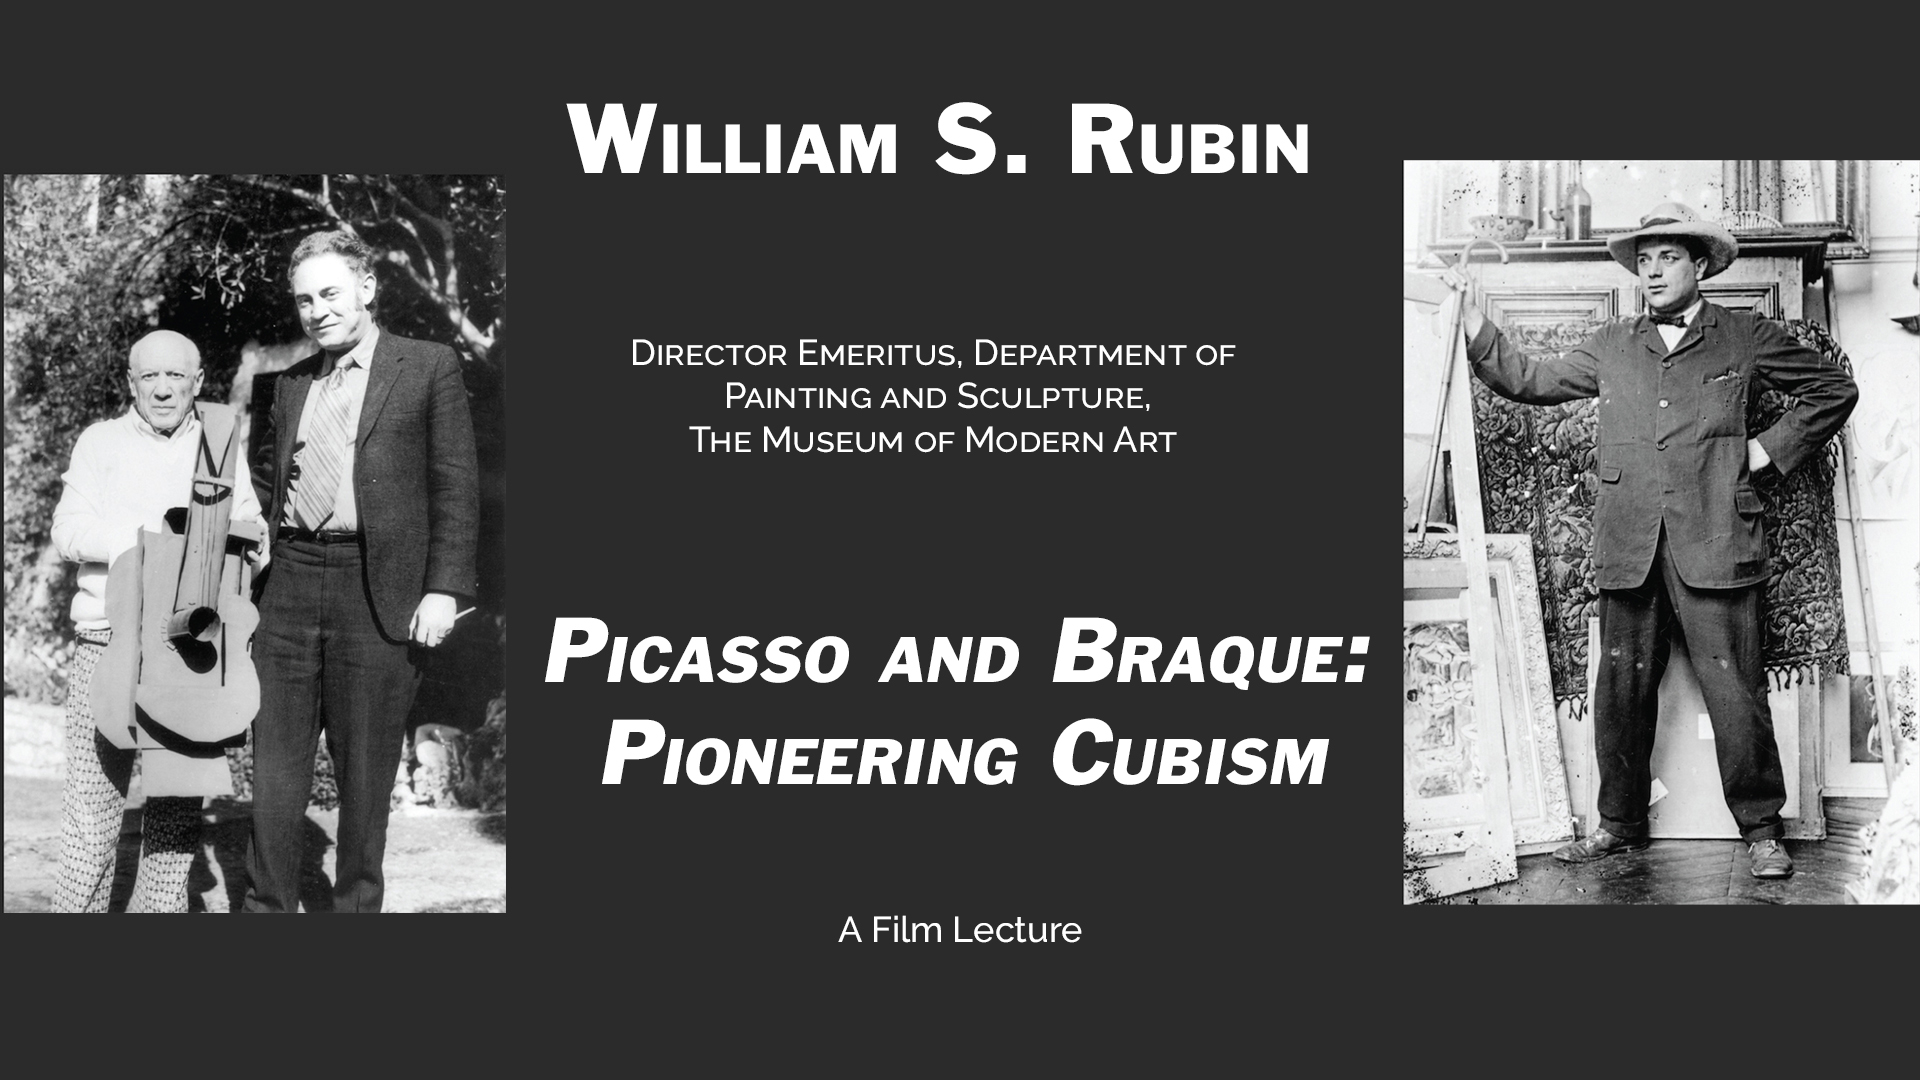 William S. Rubin on Picasso and Braque: Pioneering Cubism